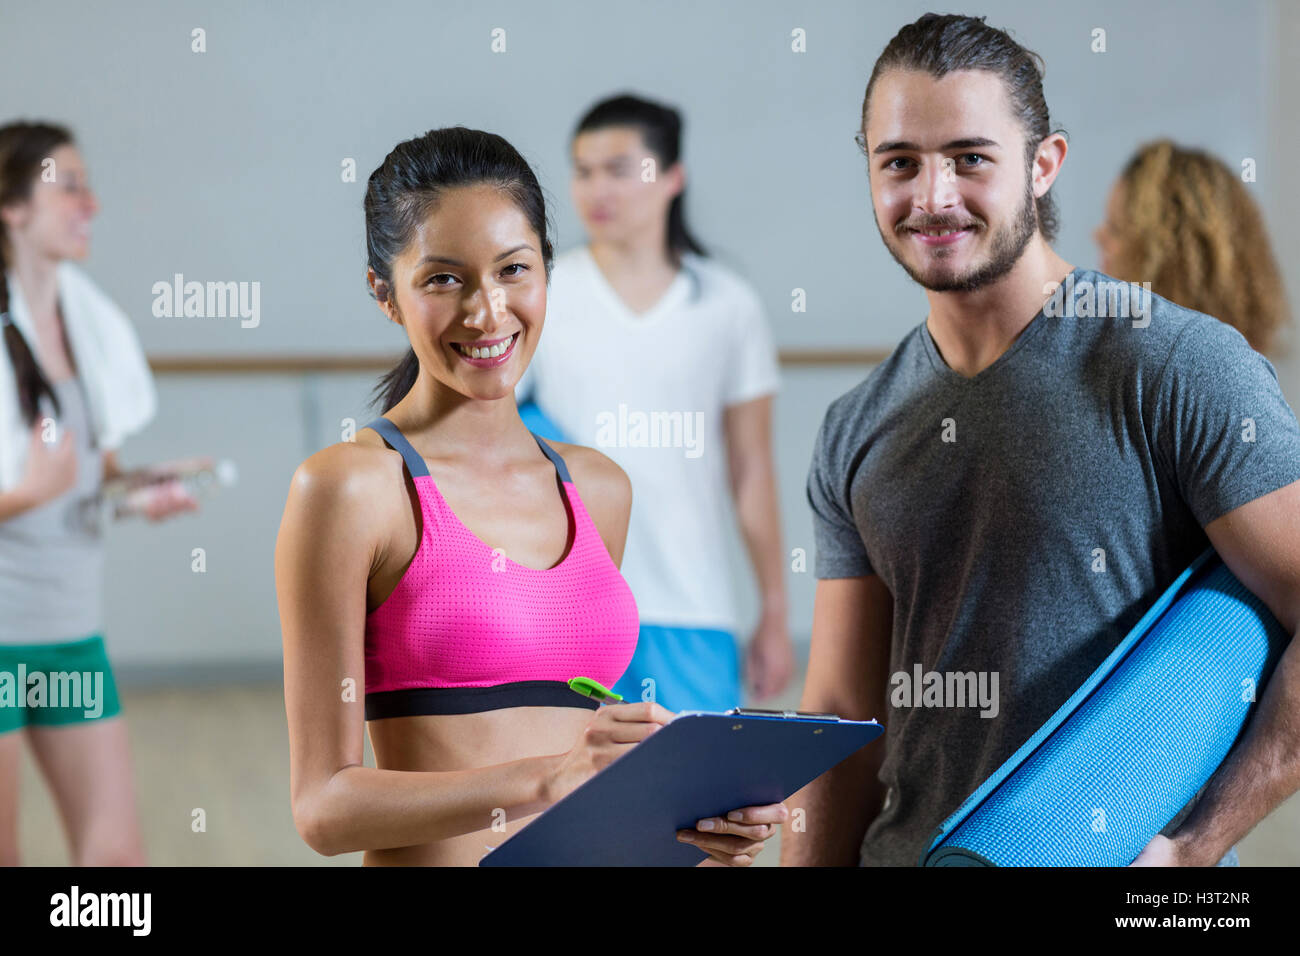 Female trainer helping man on her work out routines - Stock Image